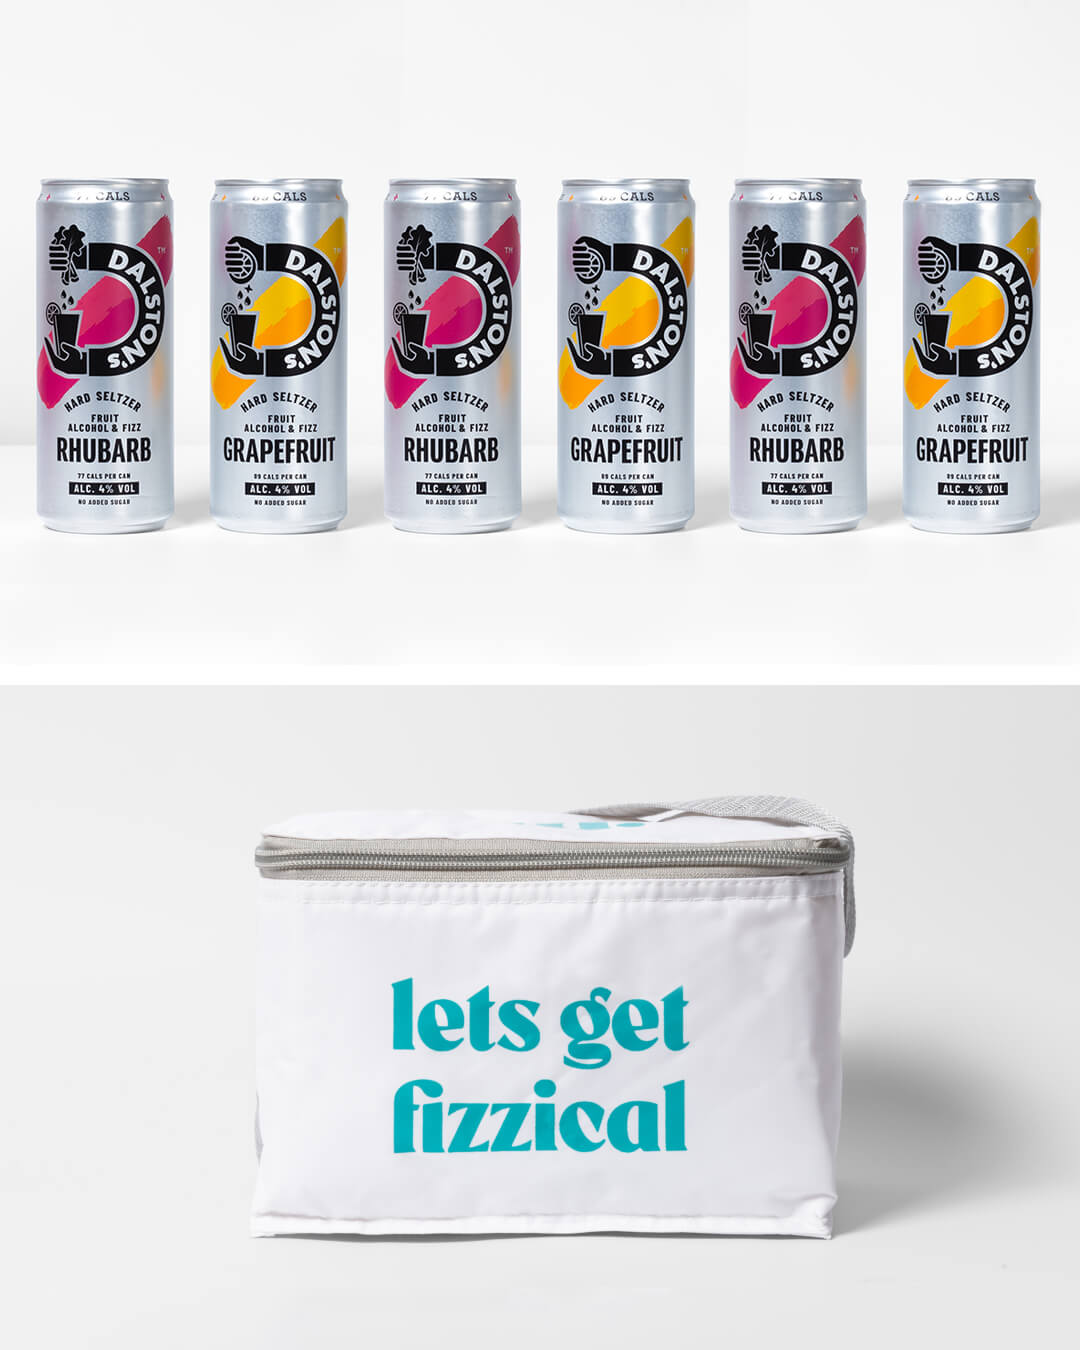 Dalston's Hard Seltzer cans & ta. cool bag